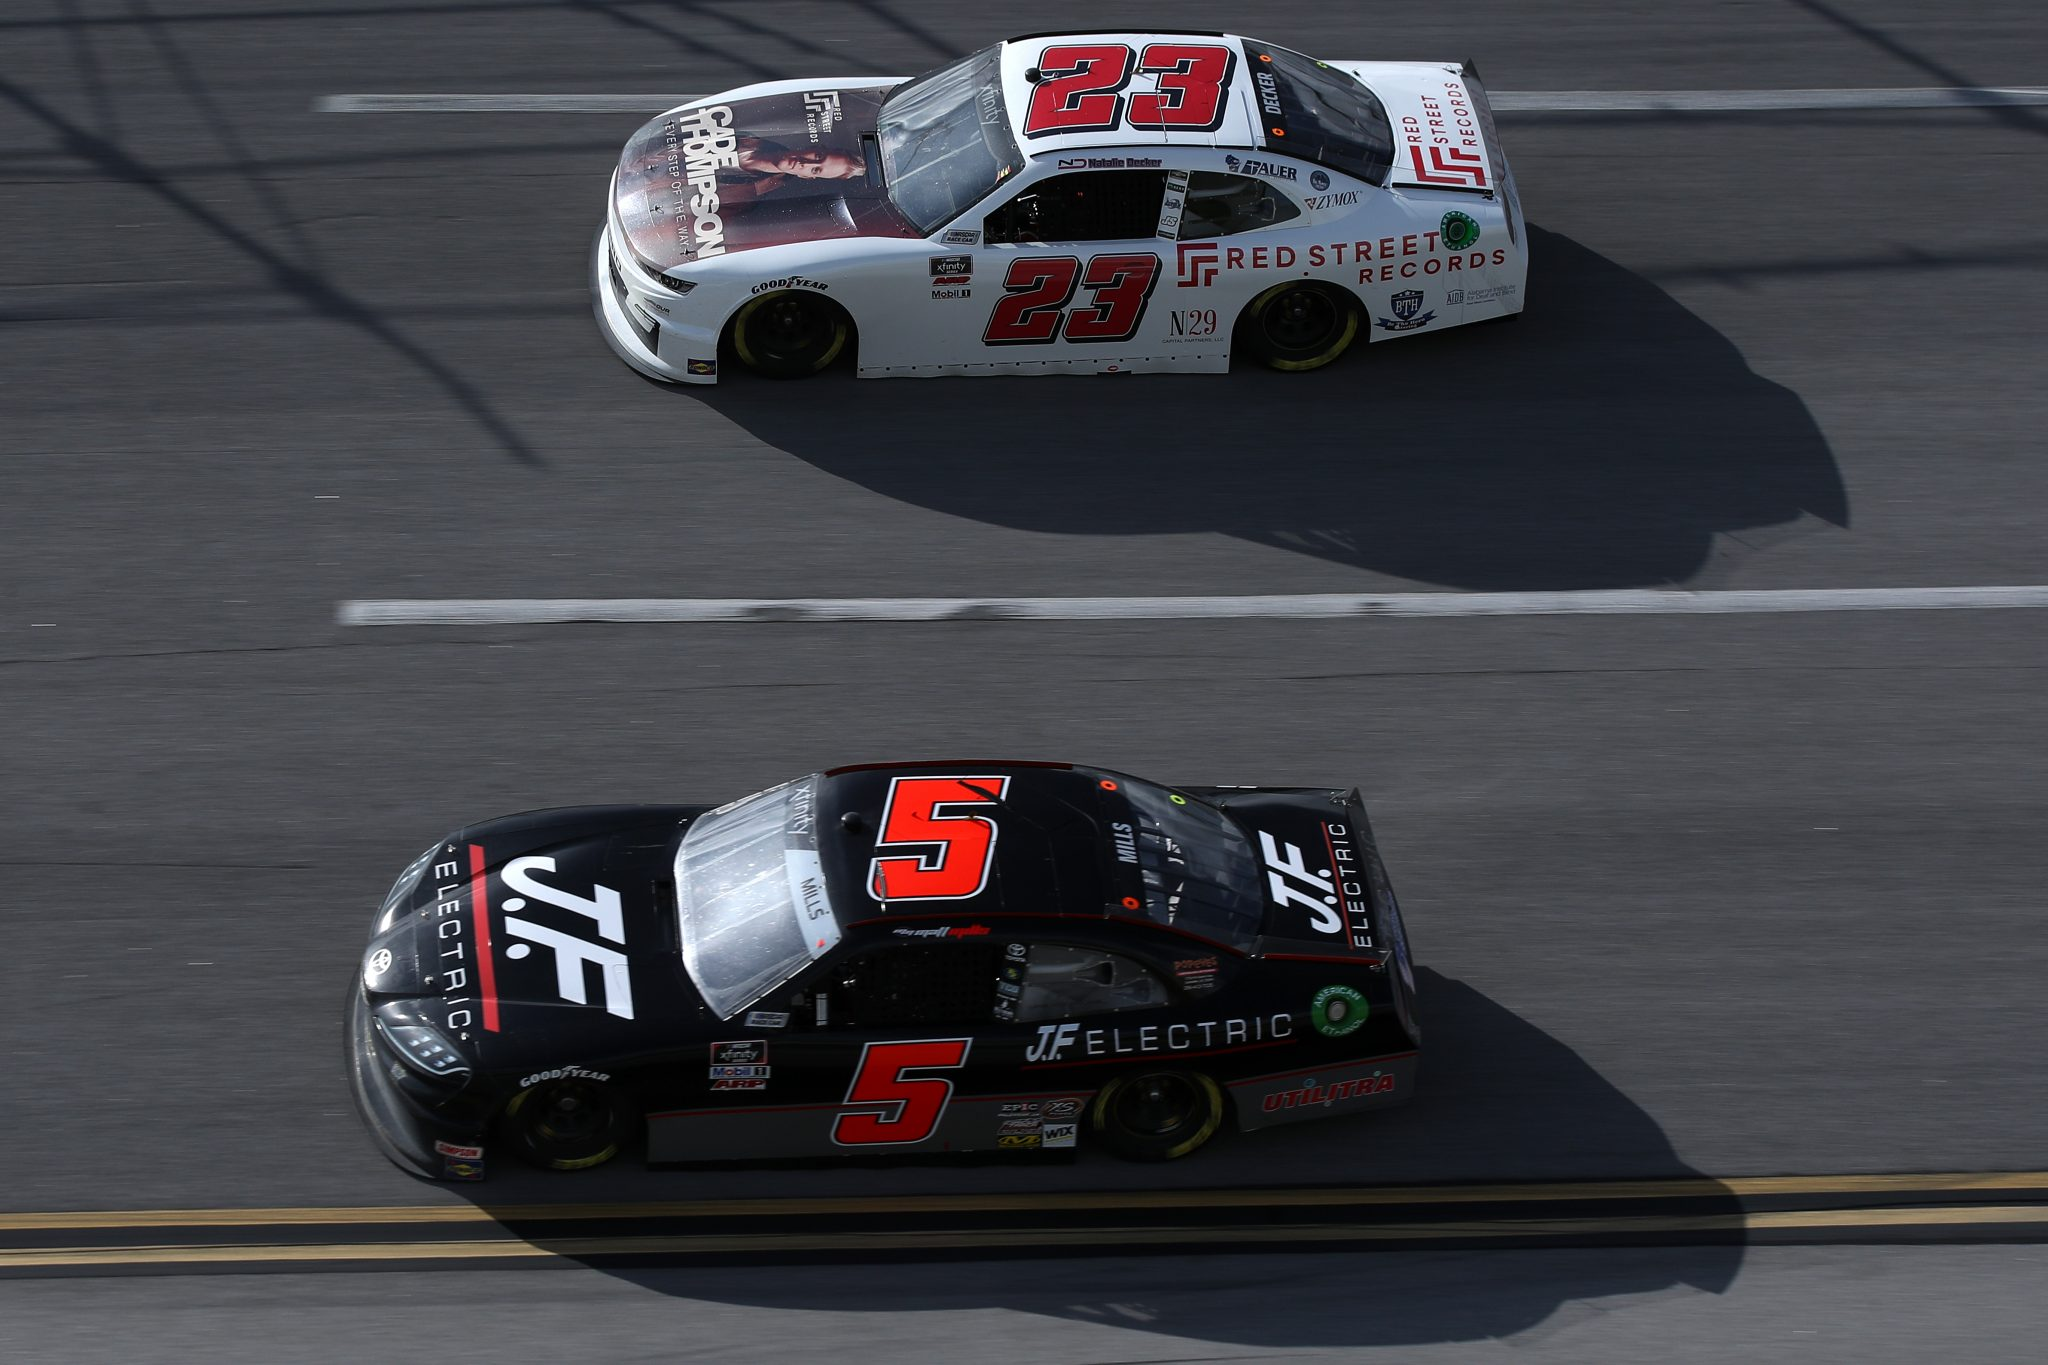 TALLADEGA, ALABAMA - APRIL 24: Matt Mills, driver of the #5 J.F. Electric Chevrolet, and Natalie Decker, driver of the #23 Red Street Records Chevrolet, race during the NASCAR Xfinity Series Ag-Pro 300 at Talladega Superspeedway on April 24, 2021 in Talladega, Alabama. (Photo by Sean Gardner/Getty Images) | Getty Images